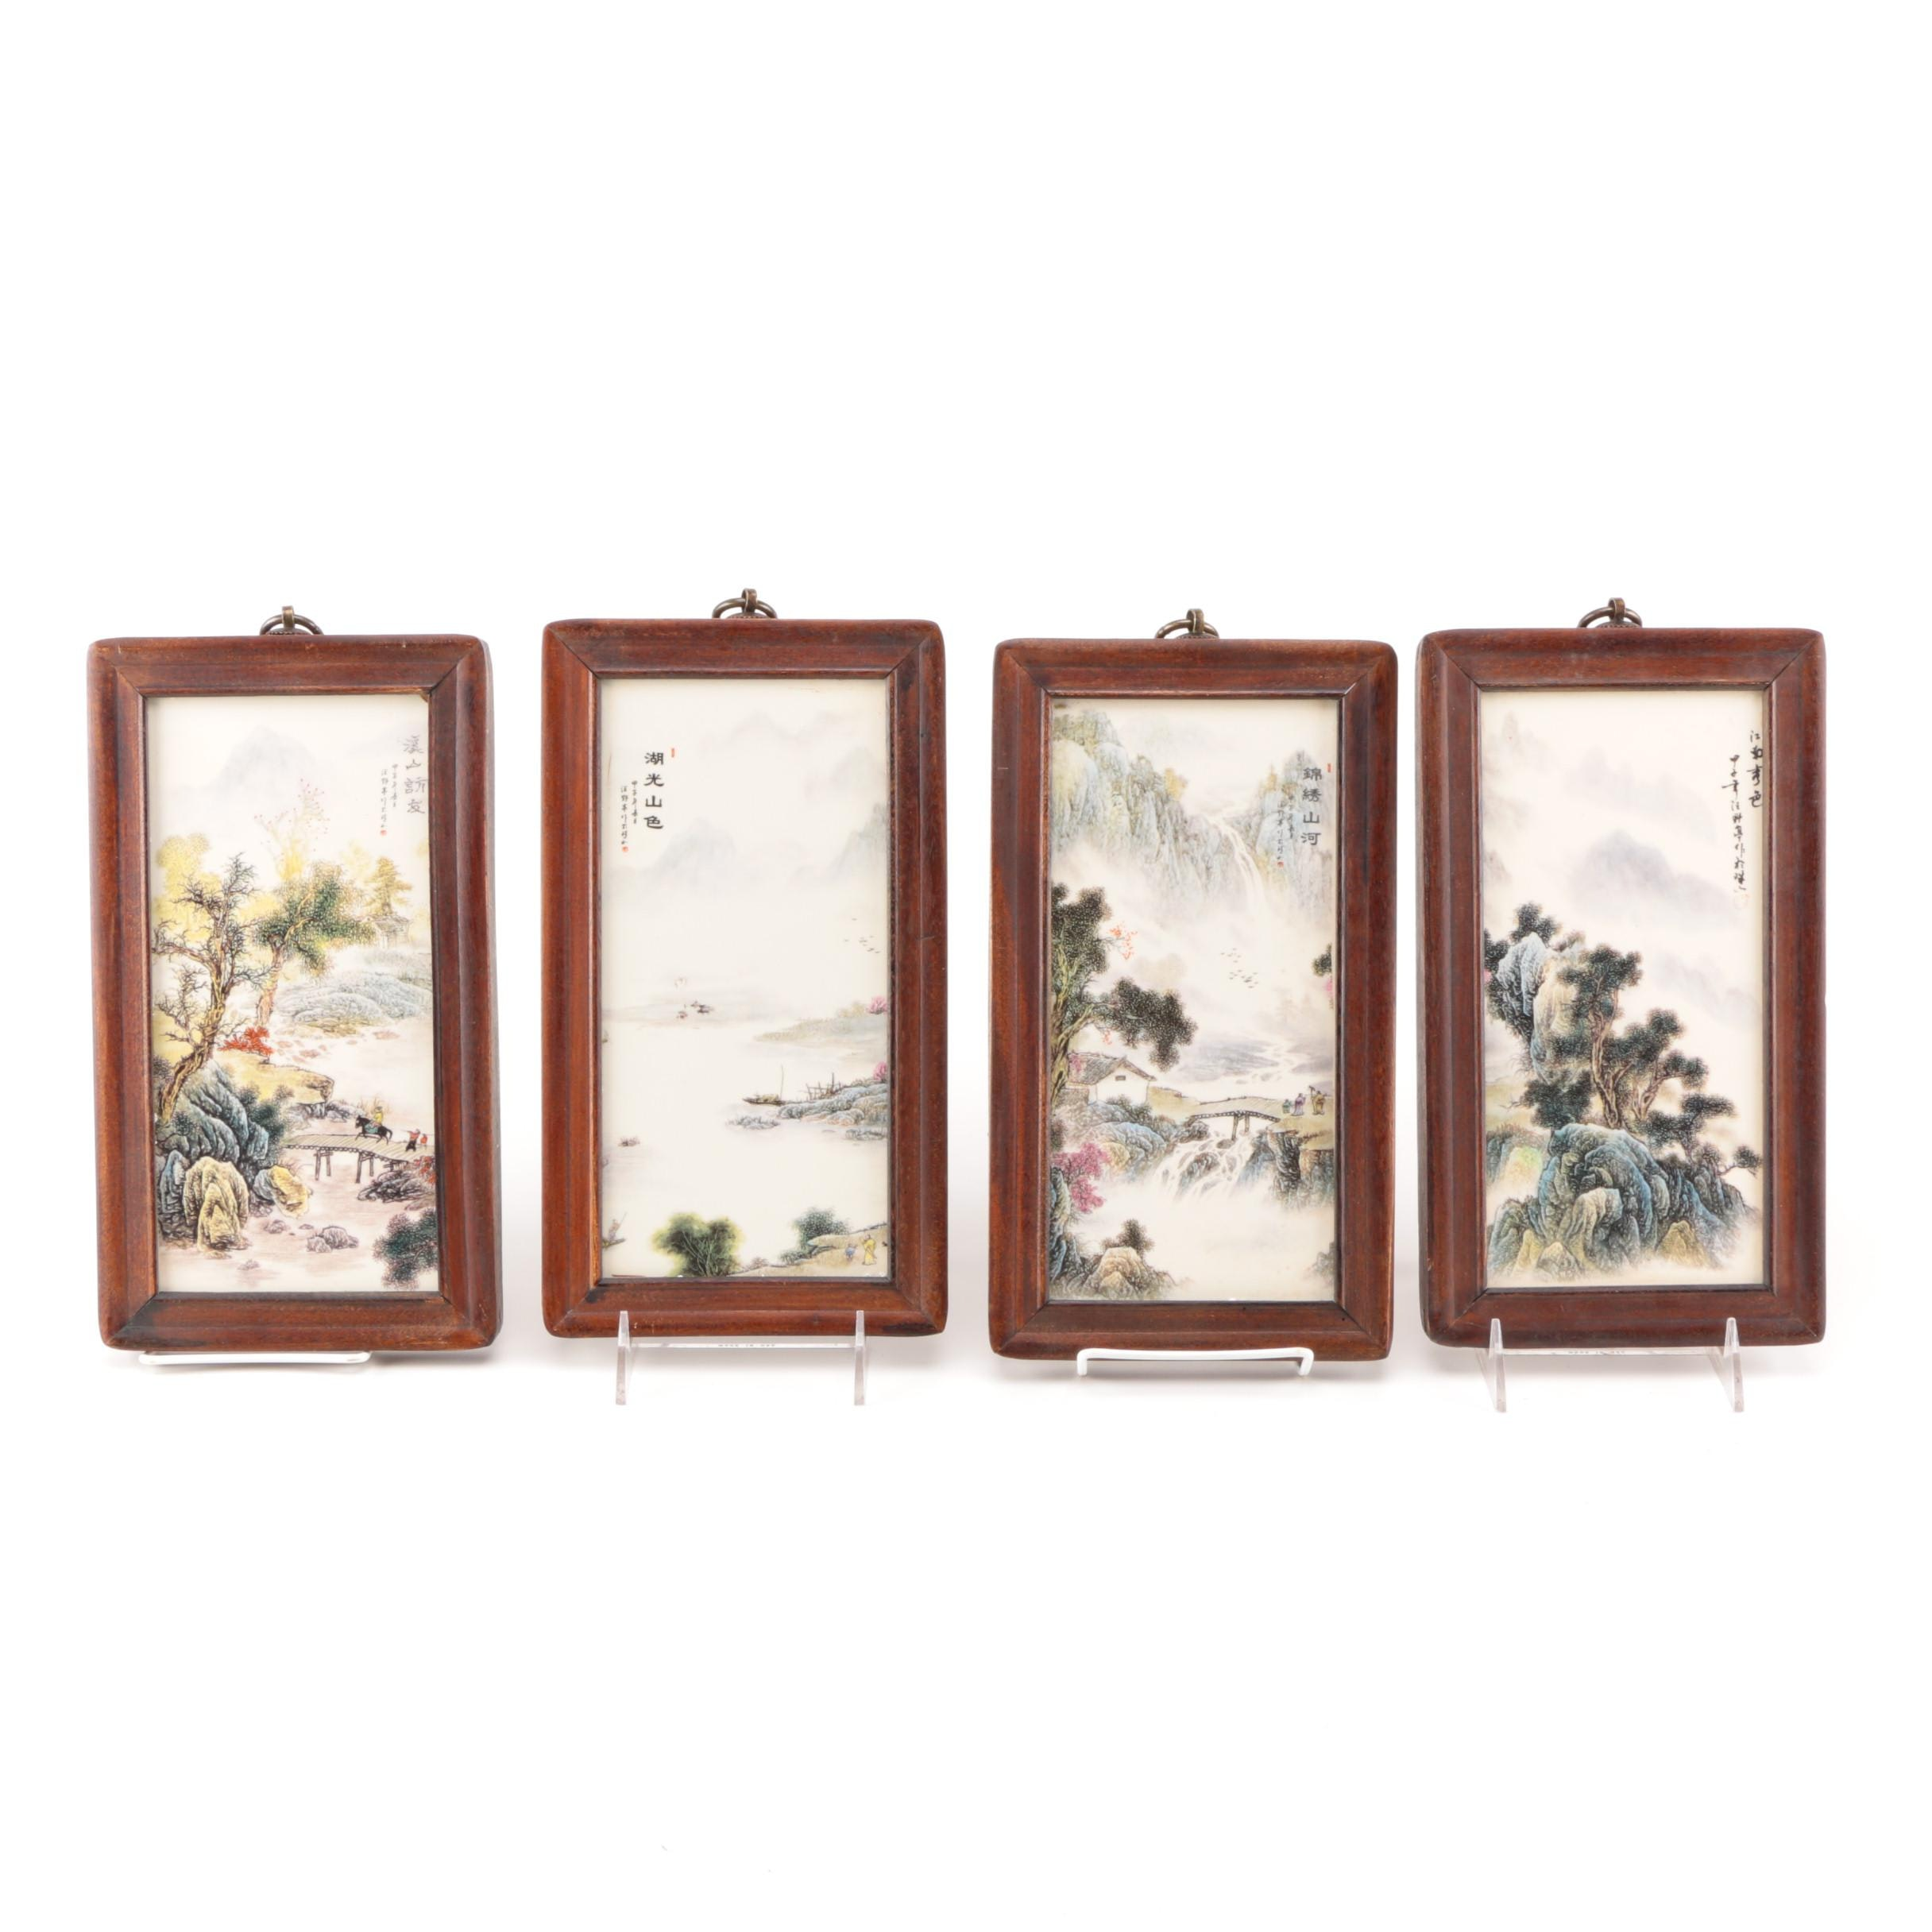 Framed Chinese Ceramic Tiles After Wang Yeting